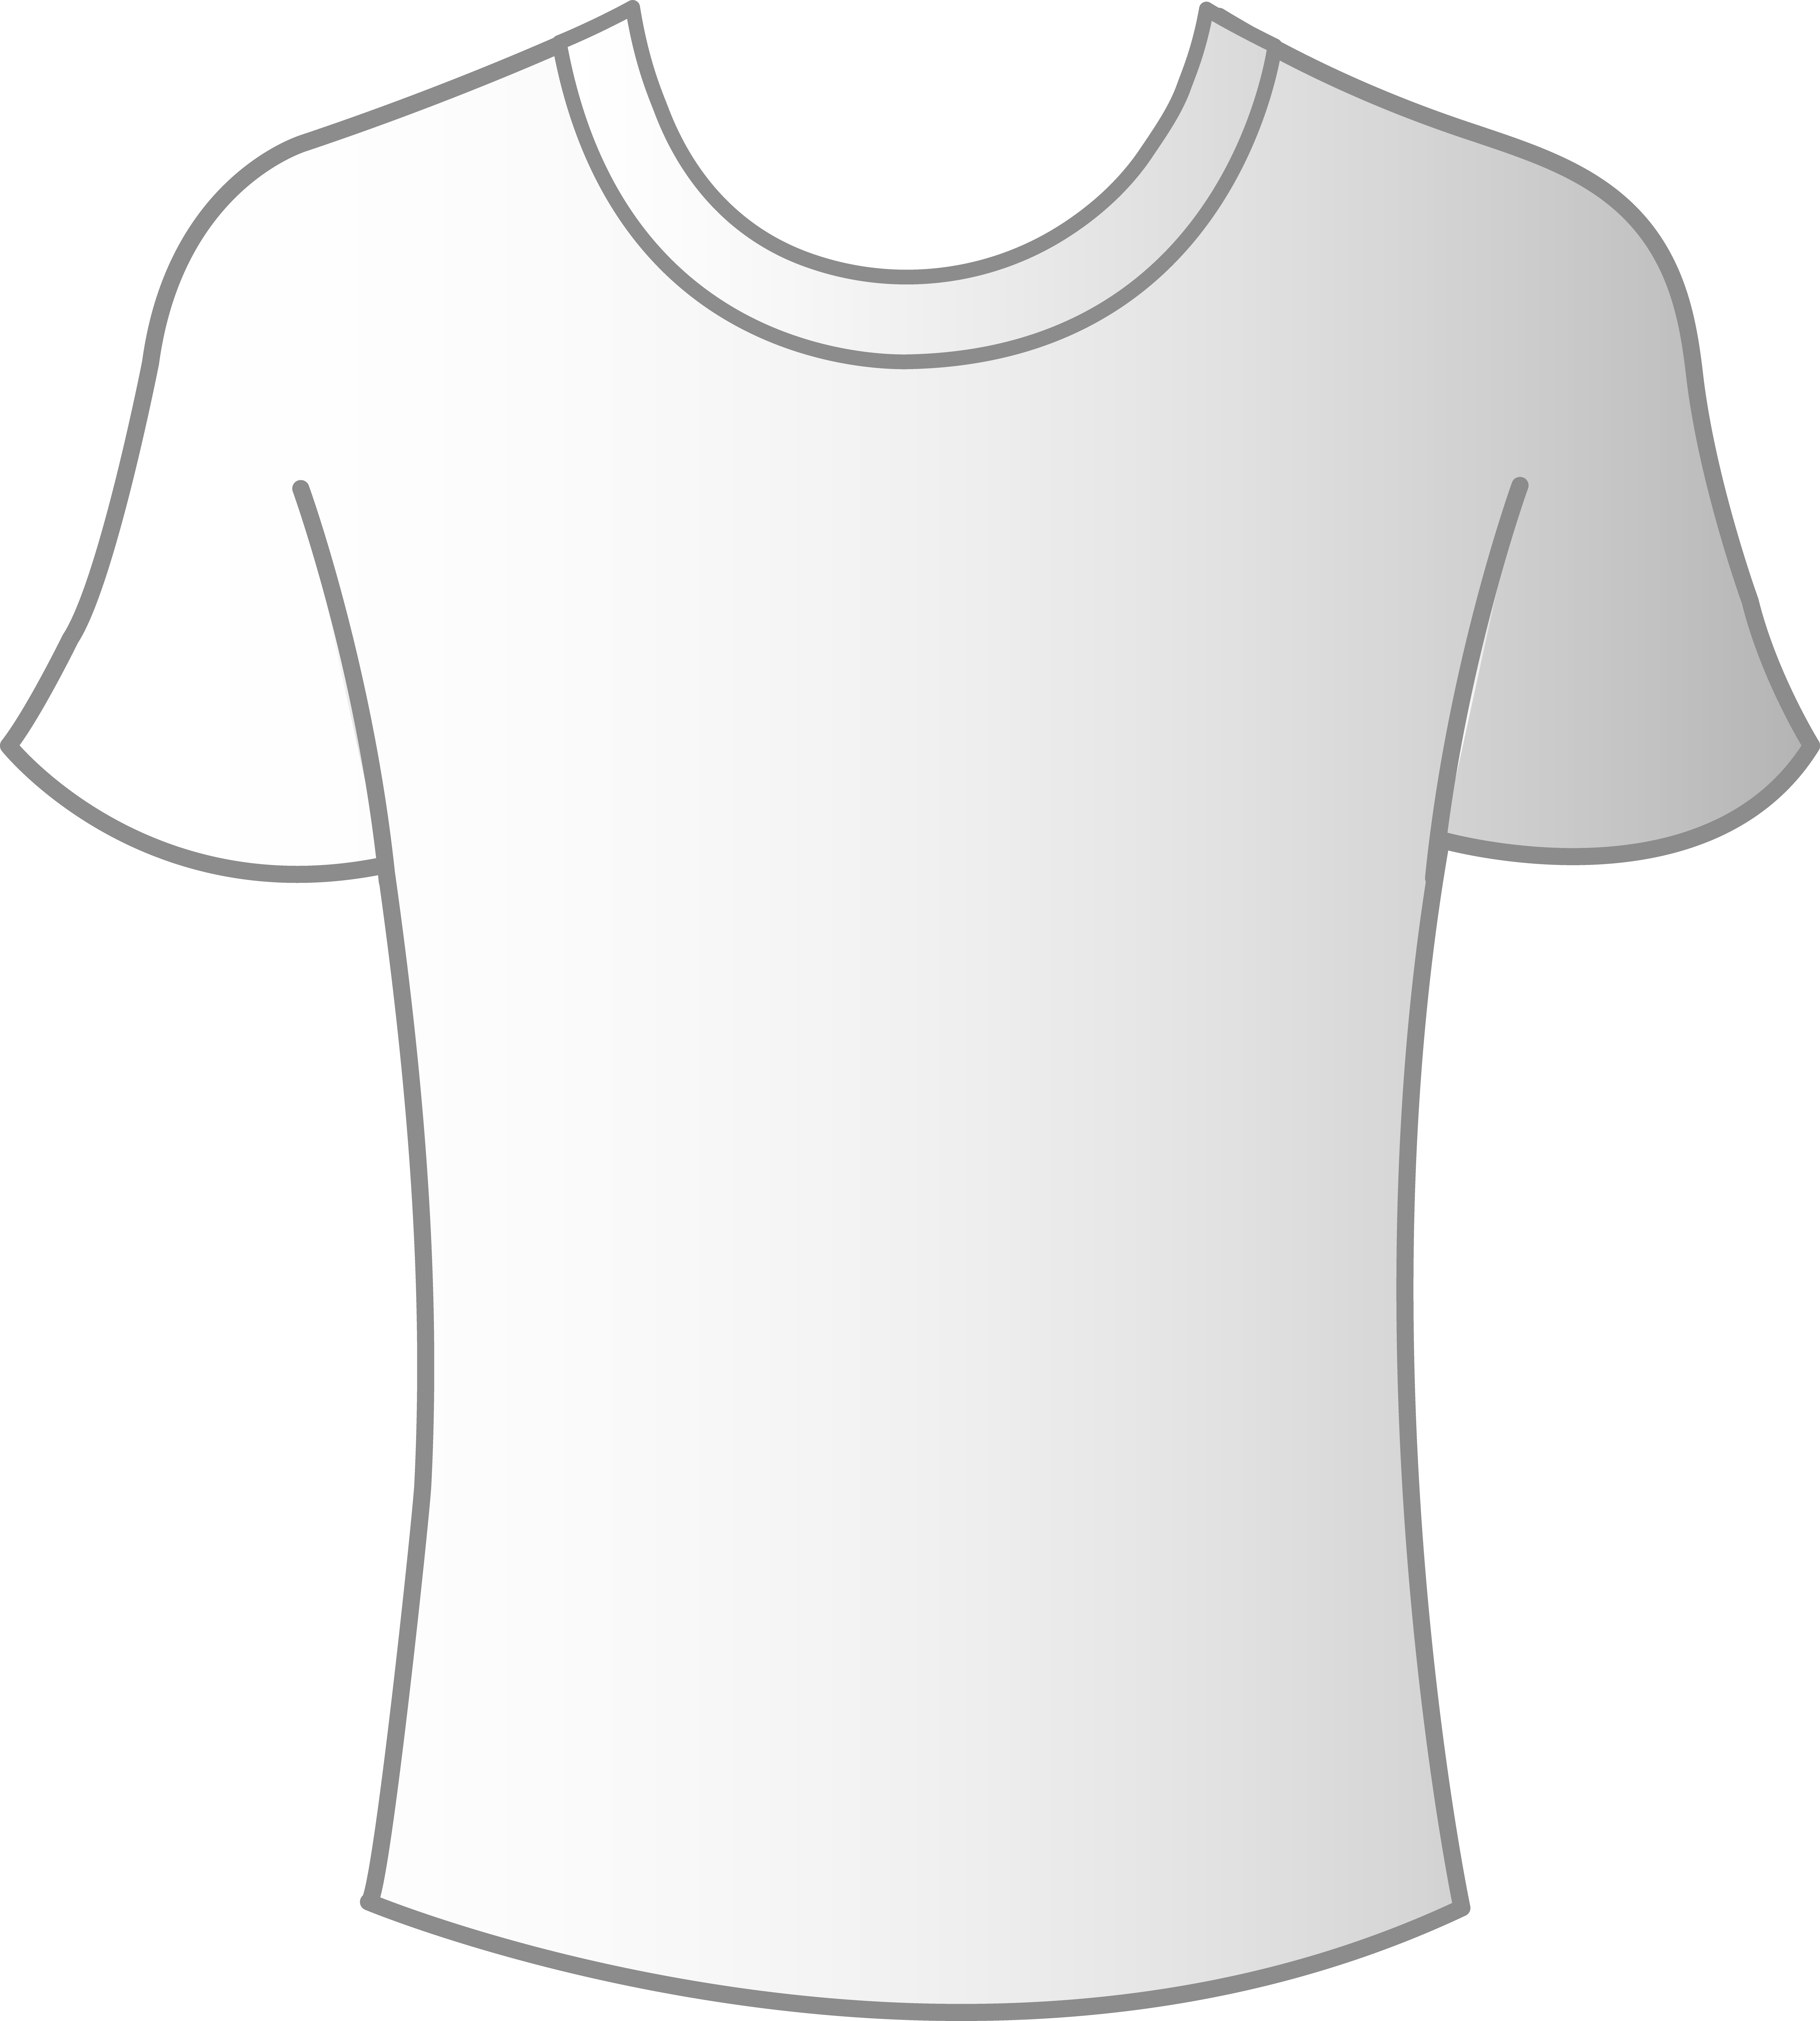 Mens template free clip. Plain white t shirt png clipart freeuse download